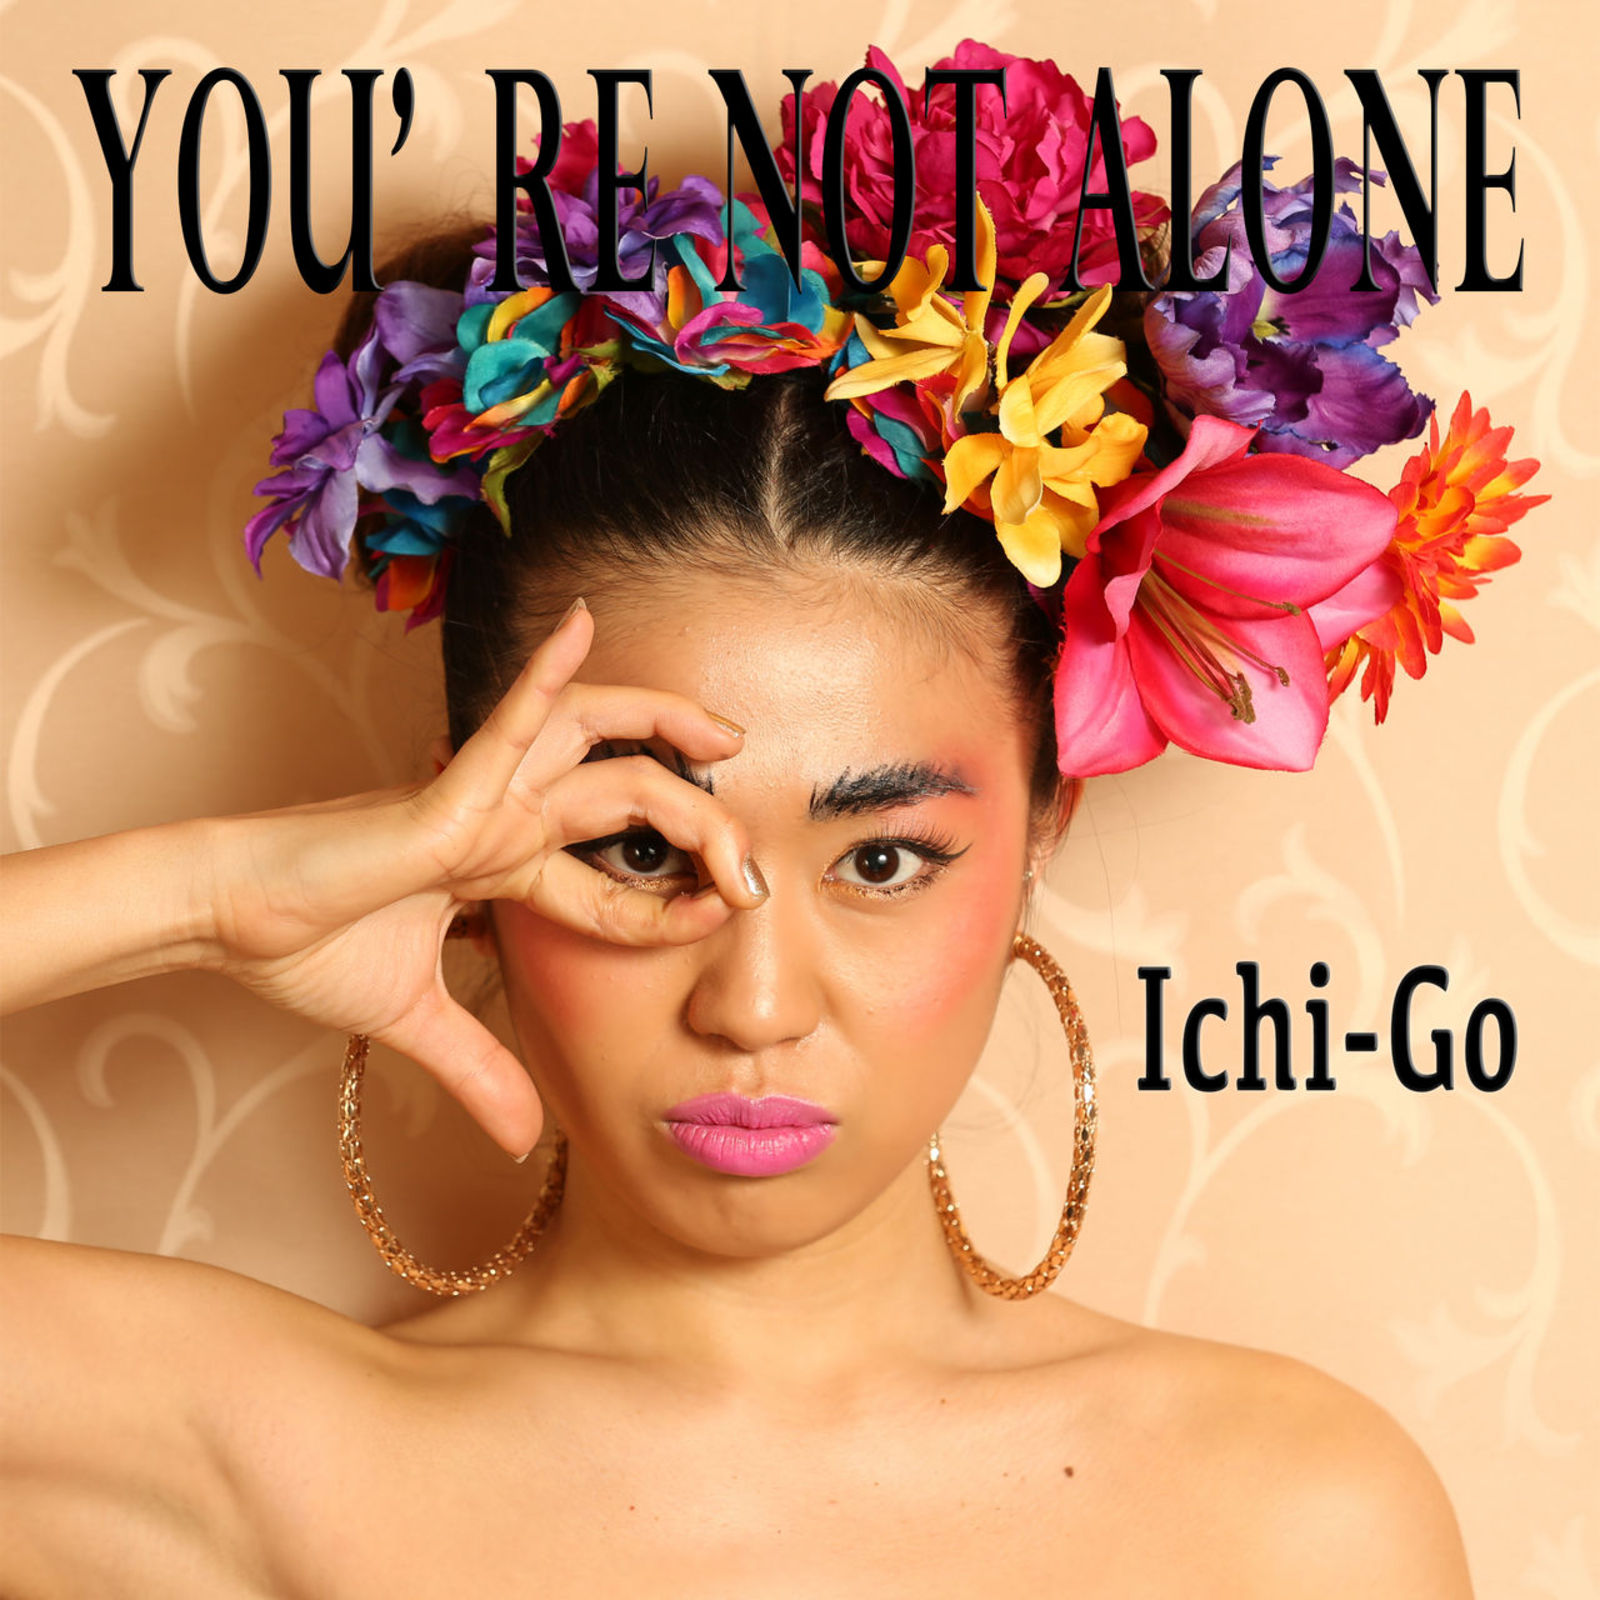 Ichi-Go / You're Not Alone - Ring tone / 2017.04